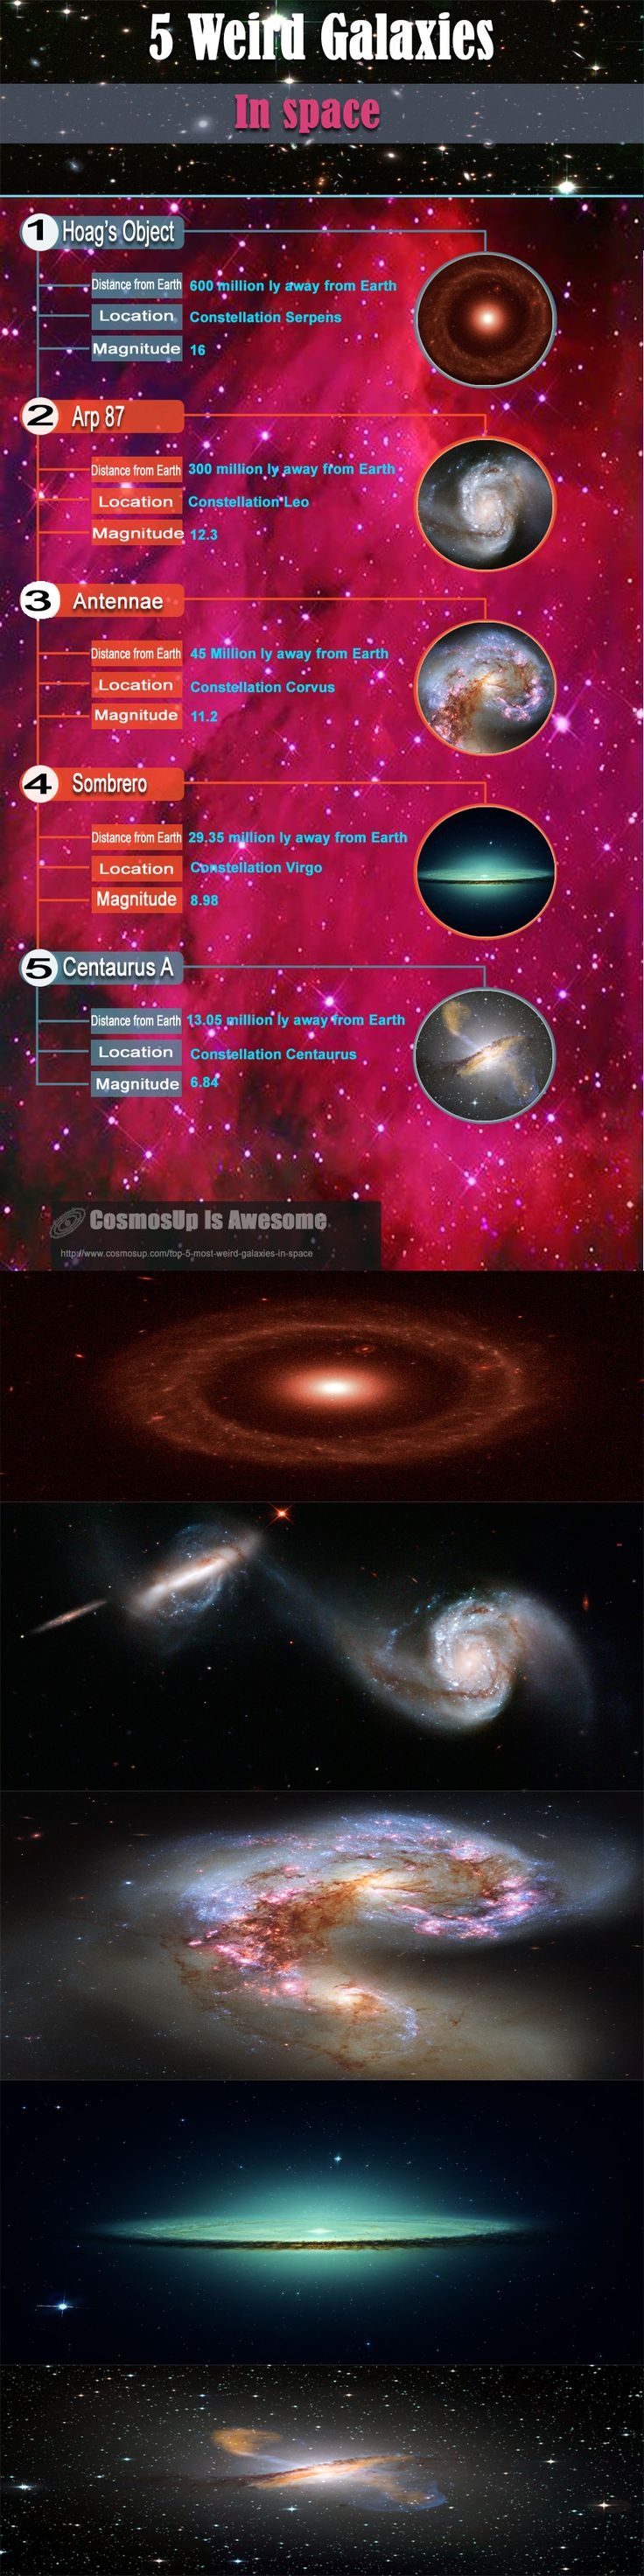 Although most galaxies fall into well defined classifications, there are some that defy all attempts at classification. While some strange and bizarre galaxies are the result of gravitational interactions with other more massive, and sometimes less massive objects, they all have one thing in common; they look more like artists' impressions than real, tangible collections of billions of stars. Take a look at the stunning photos below credited to the NASA image gallery